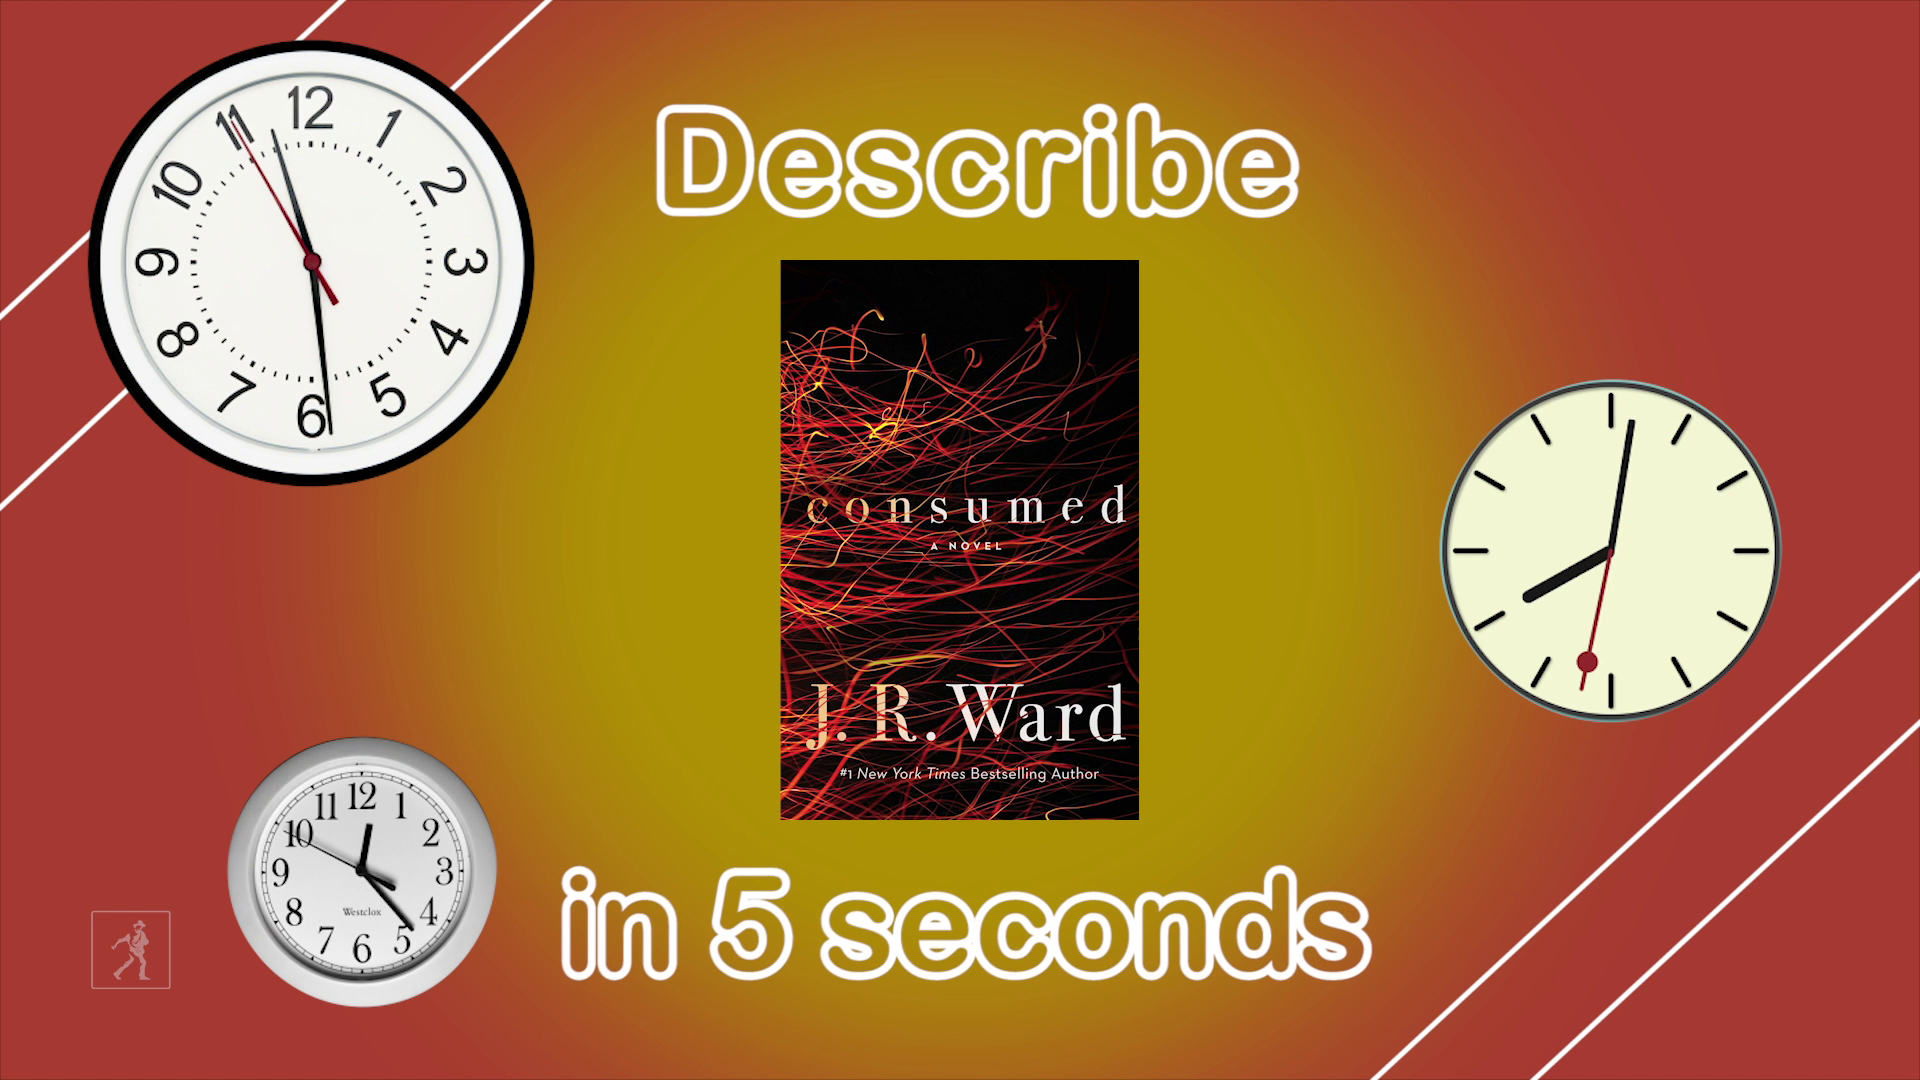 The 5 Second Challenge: CONSUMED